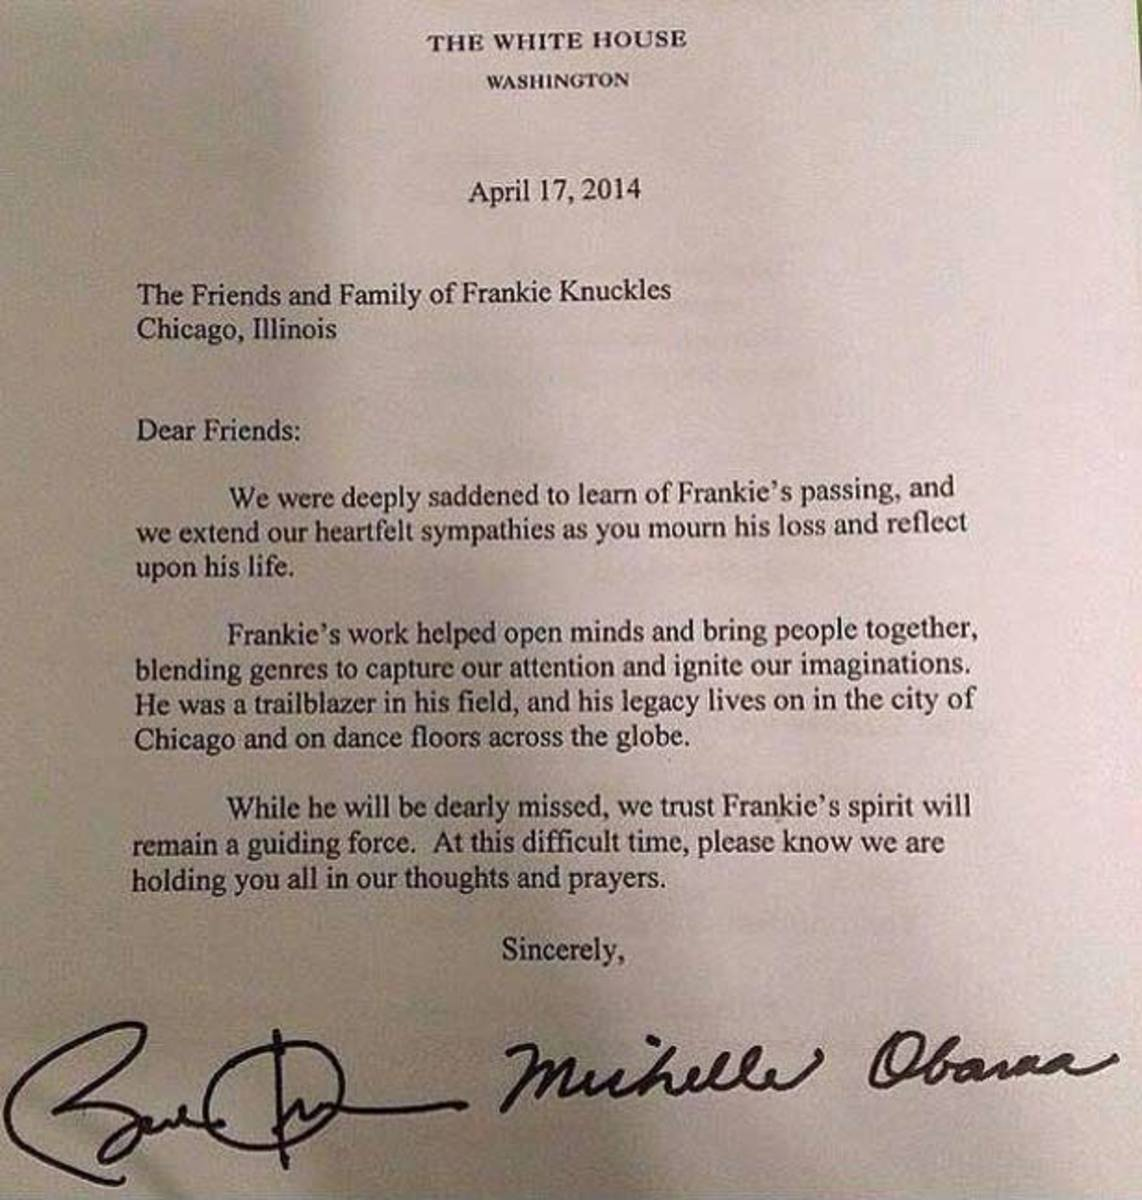 writing a letter to barack obama